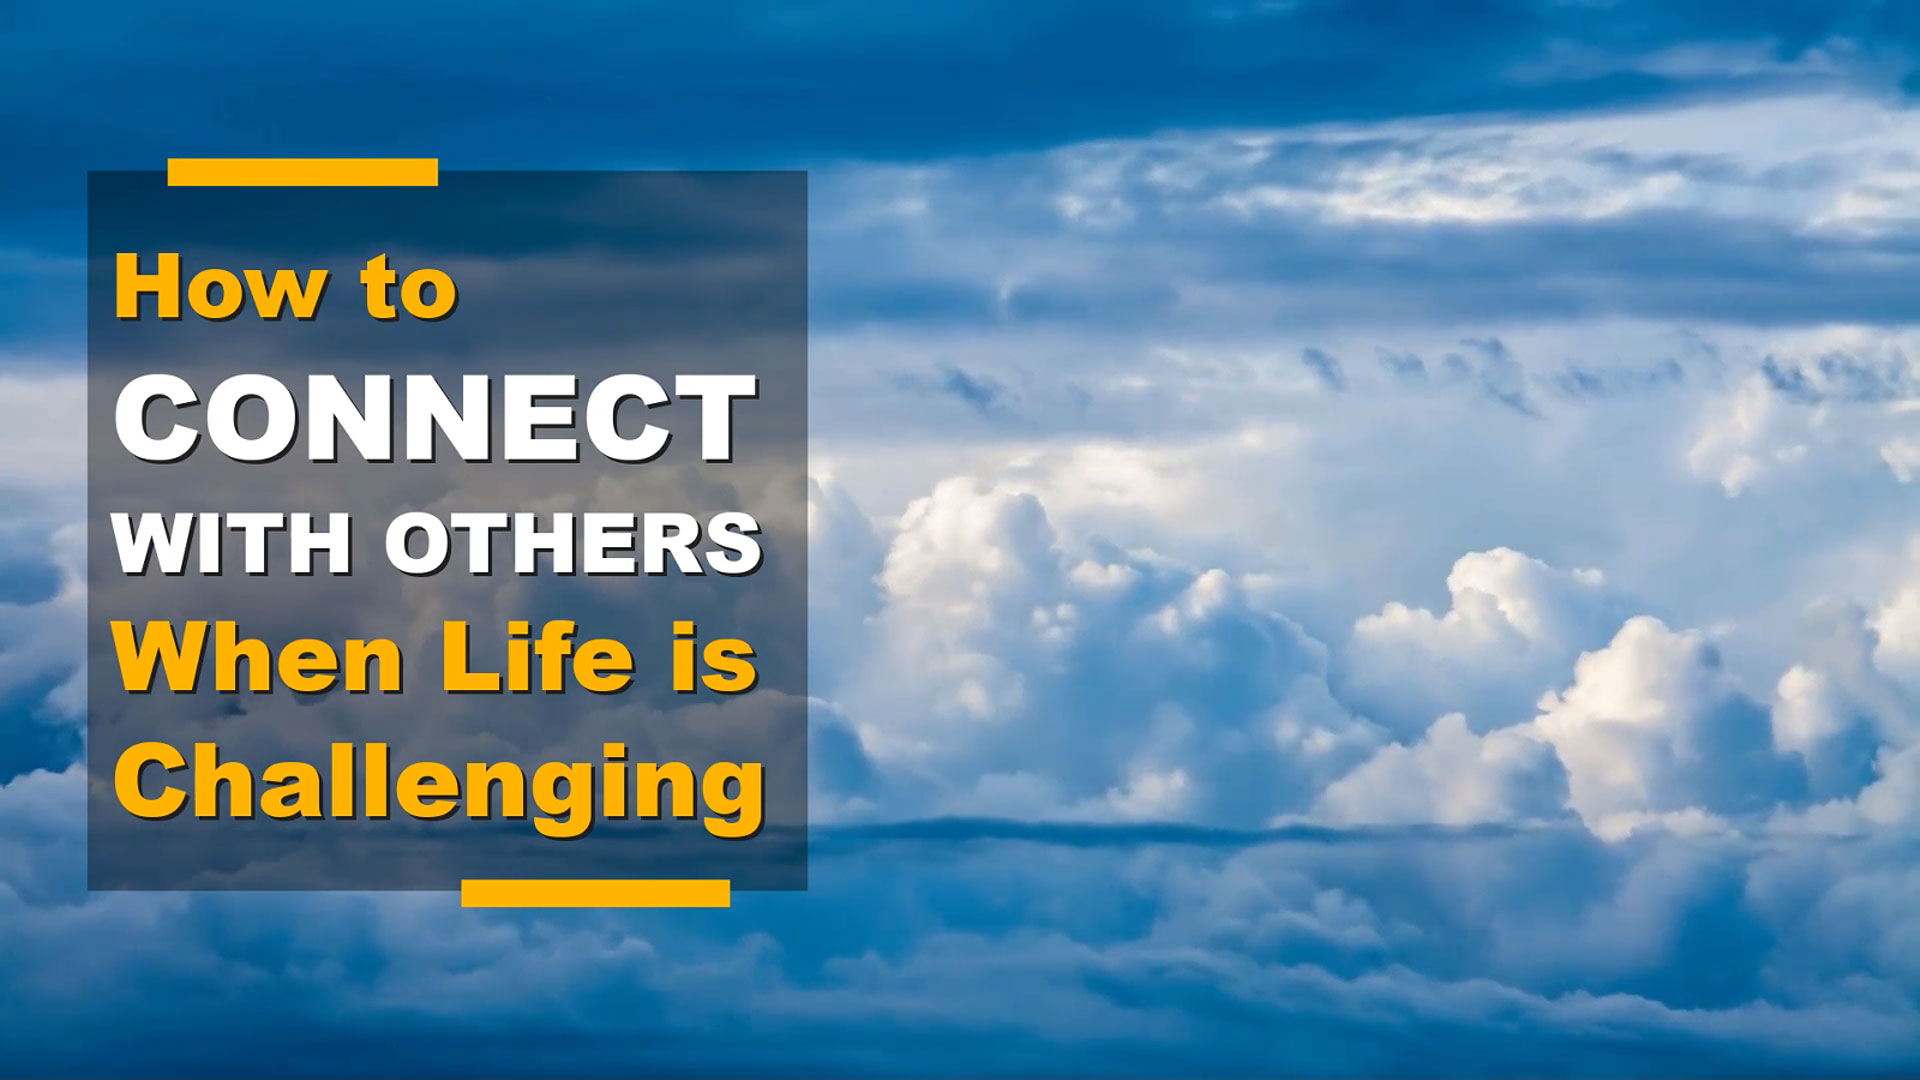 How to Connect With Others When Life is Challenging